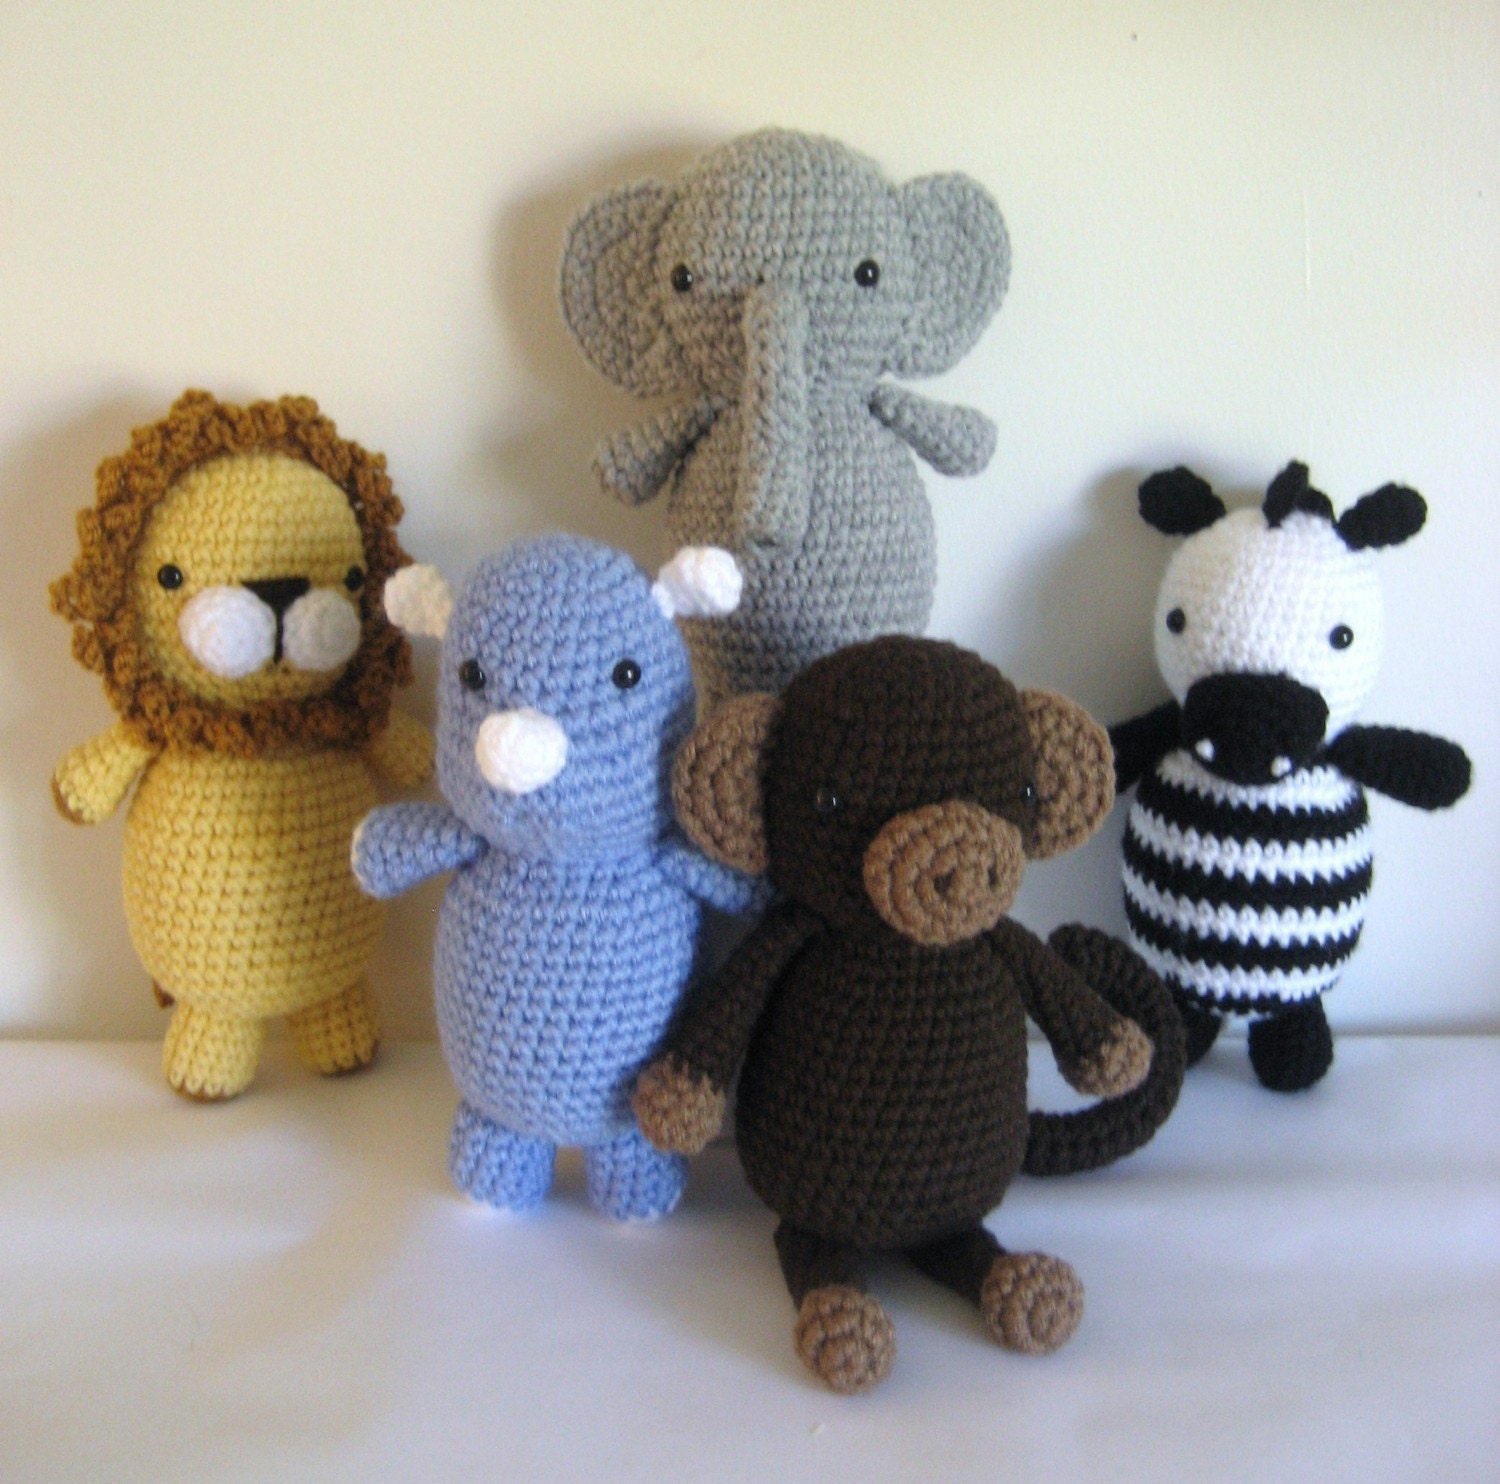 Amigurumi Askina Etsy : PDF Amigurumi Safari Animals Pattern set